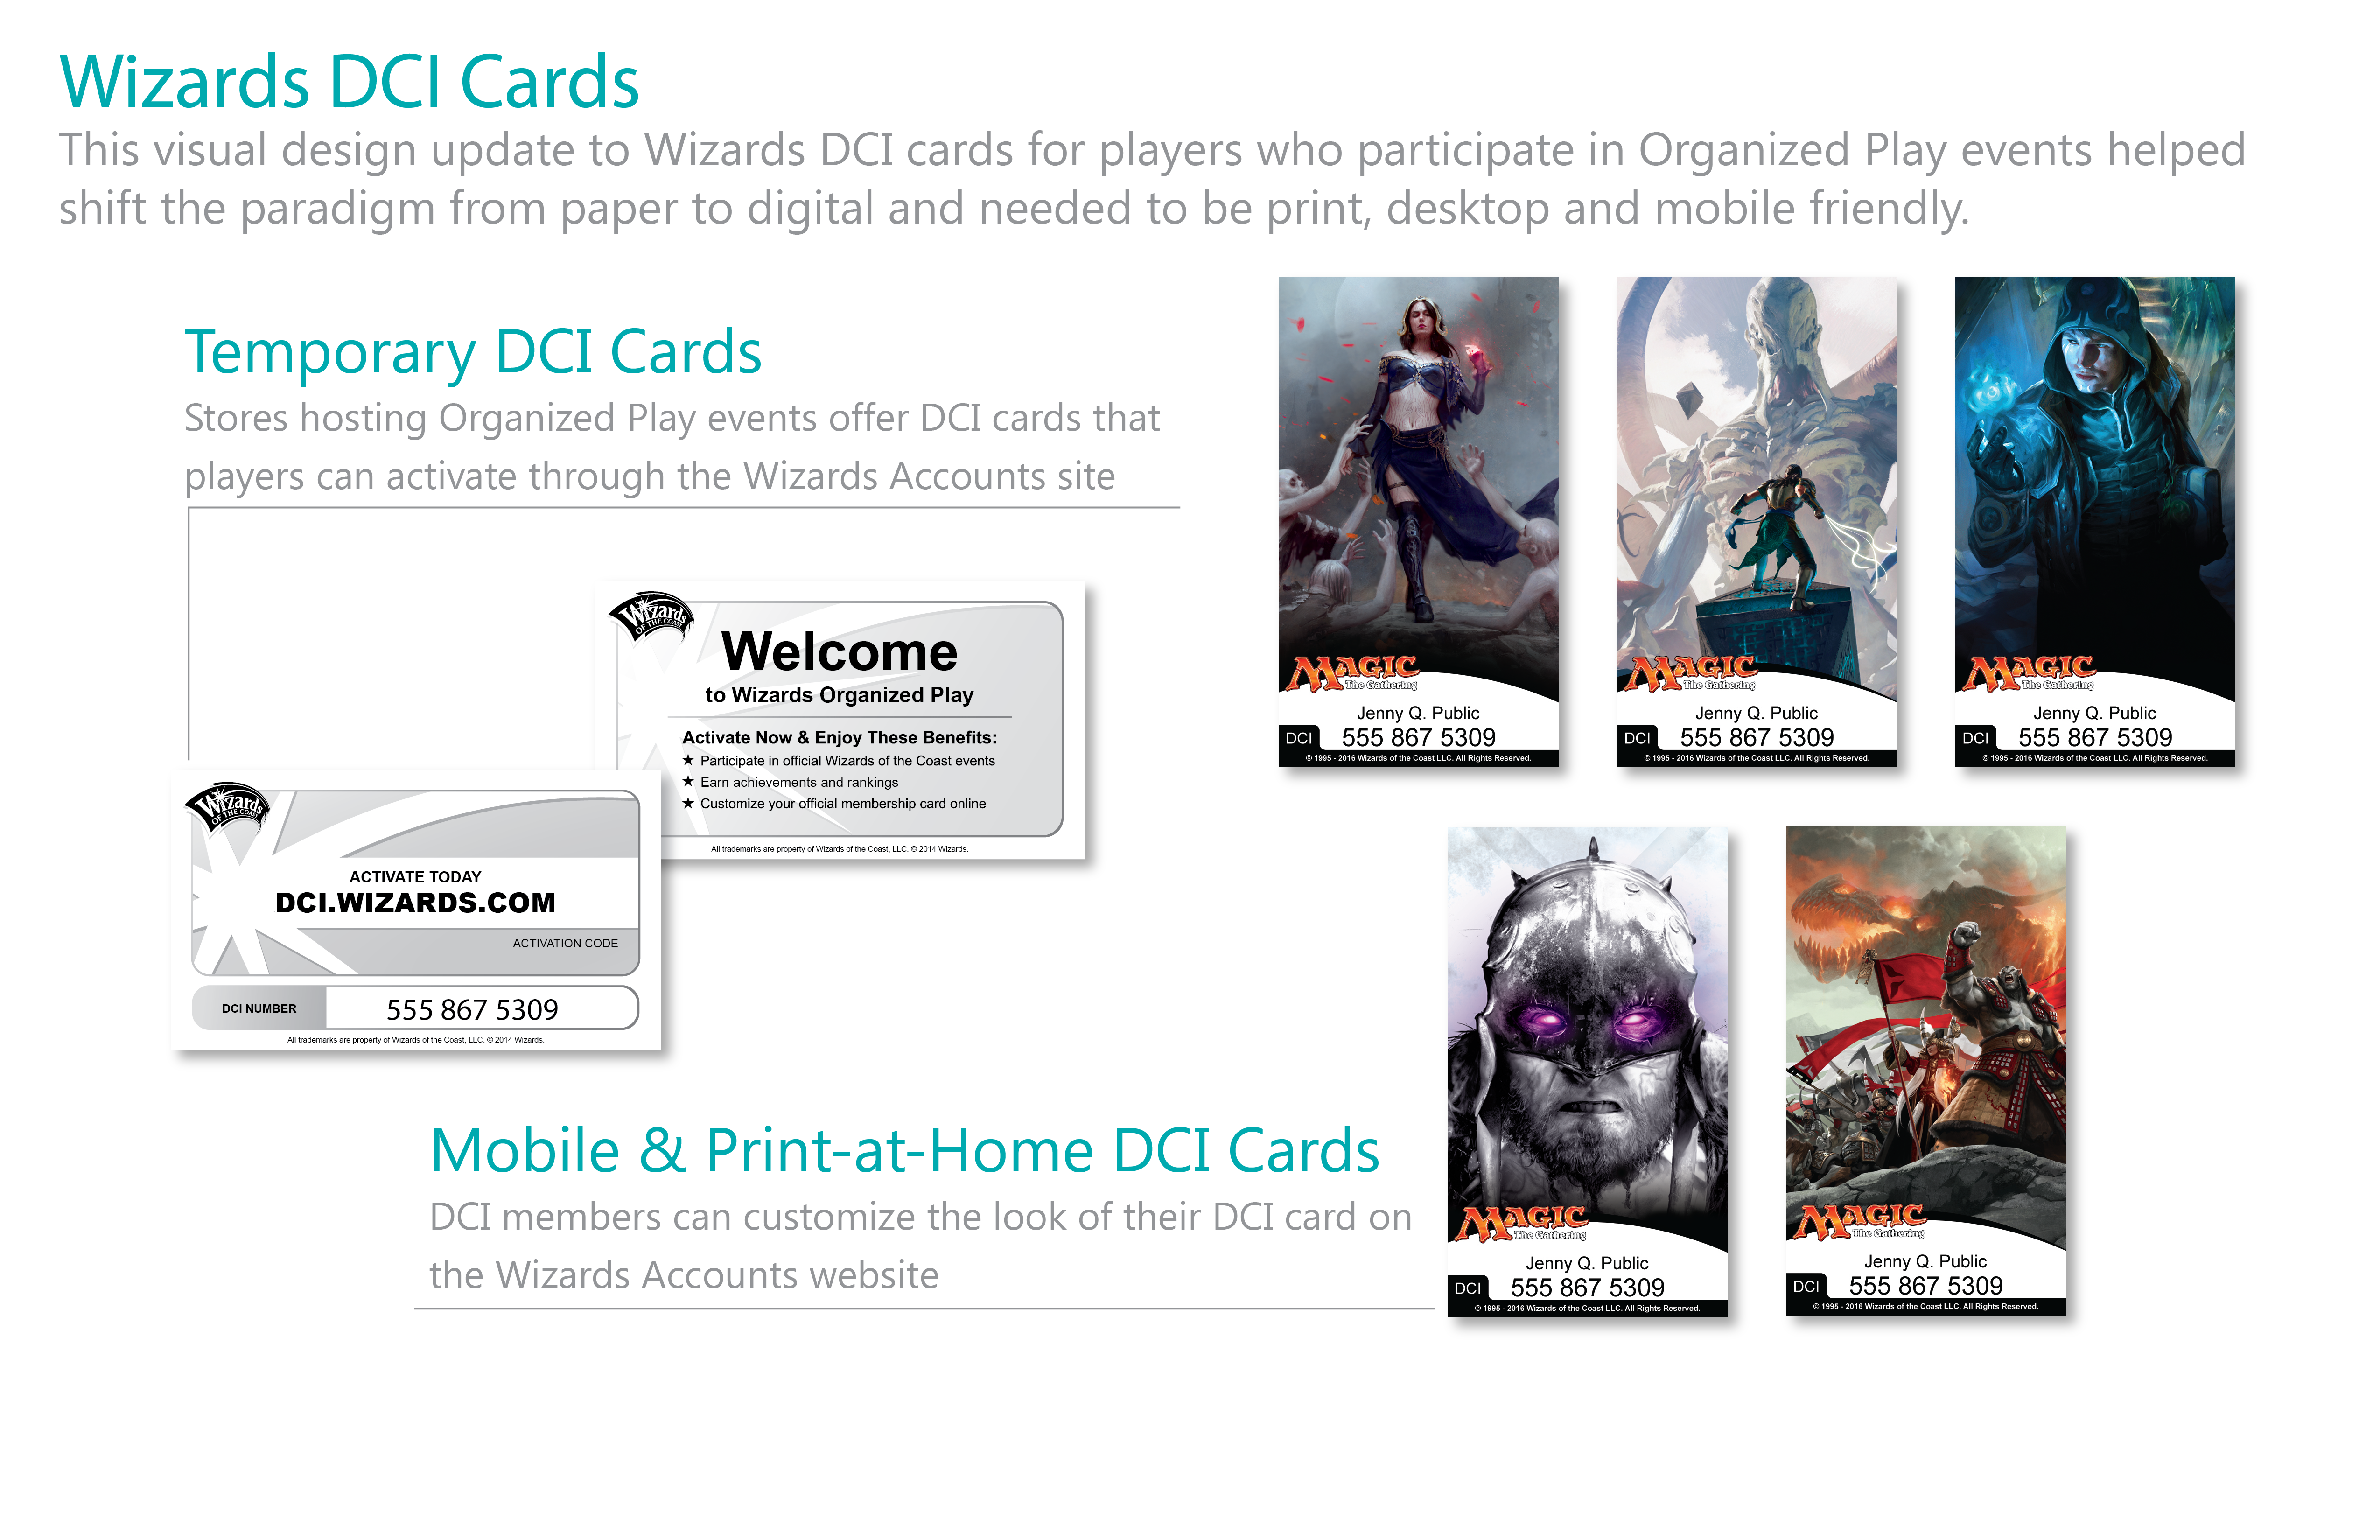 Wizards DCI Cards